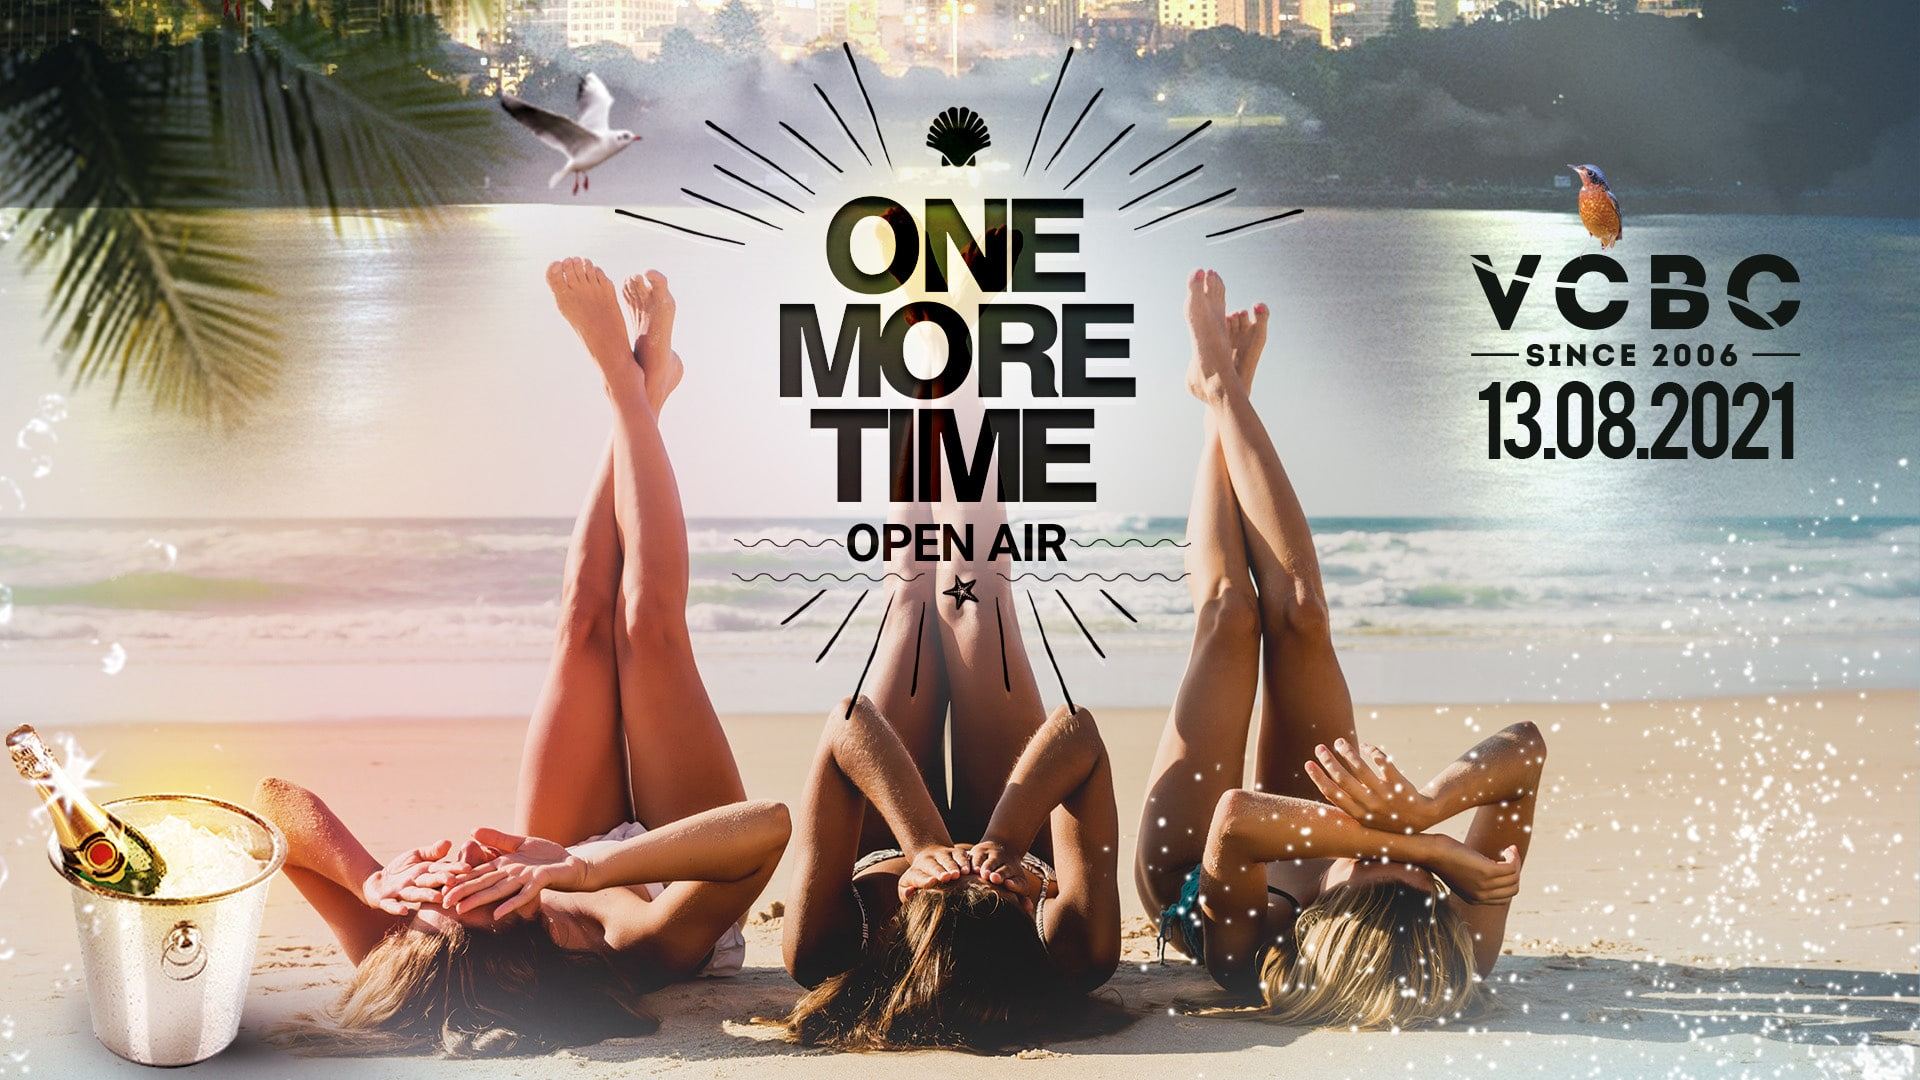 Events Wien: One More Time 2021 – OPEN AIR